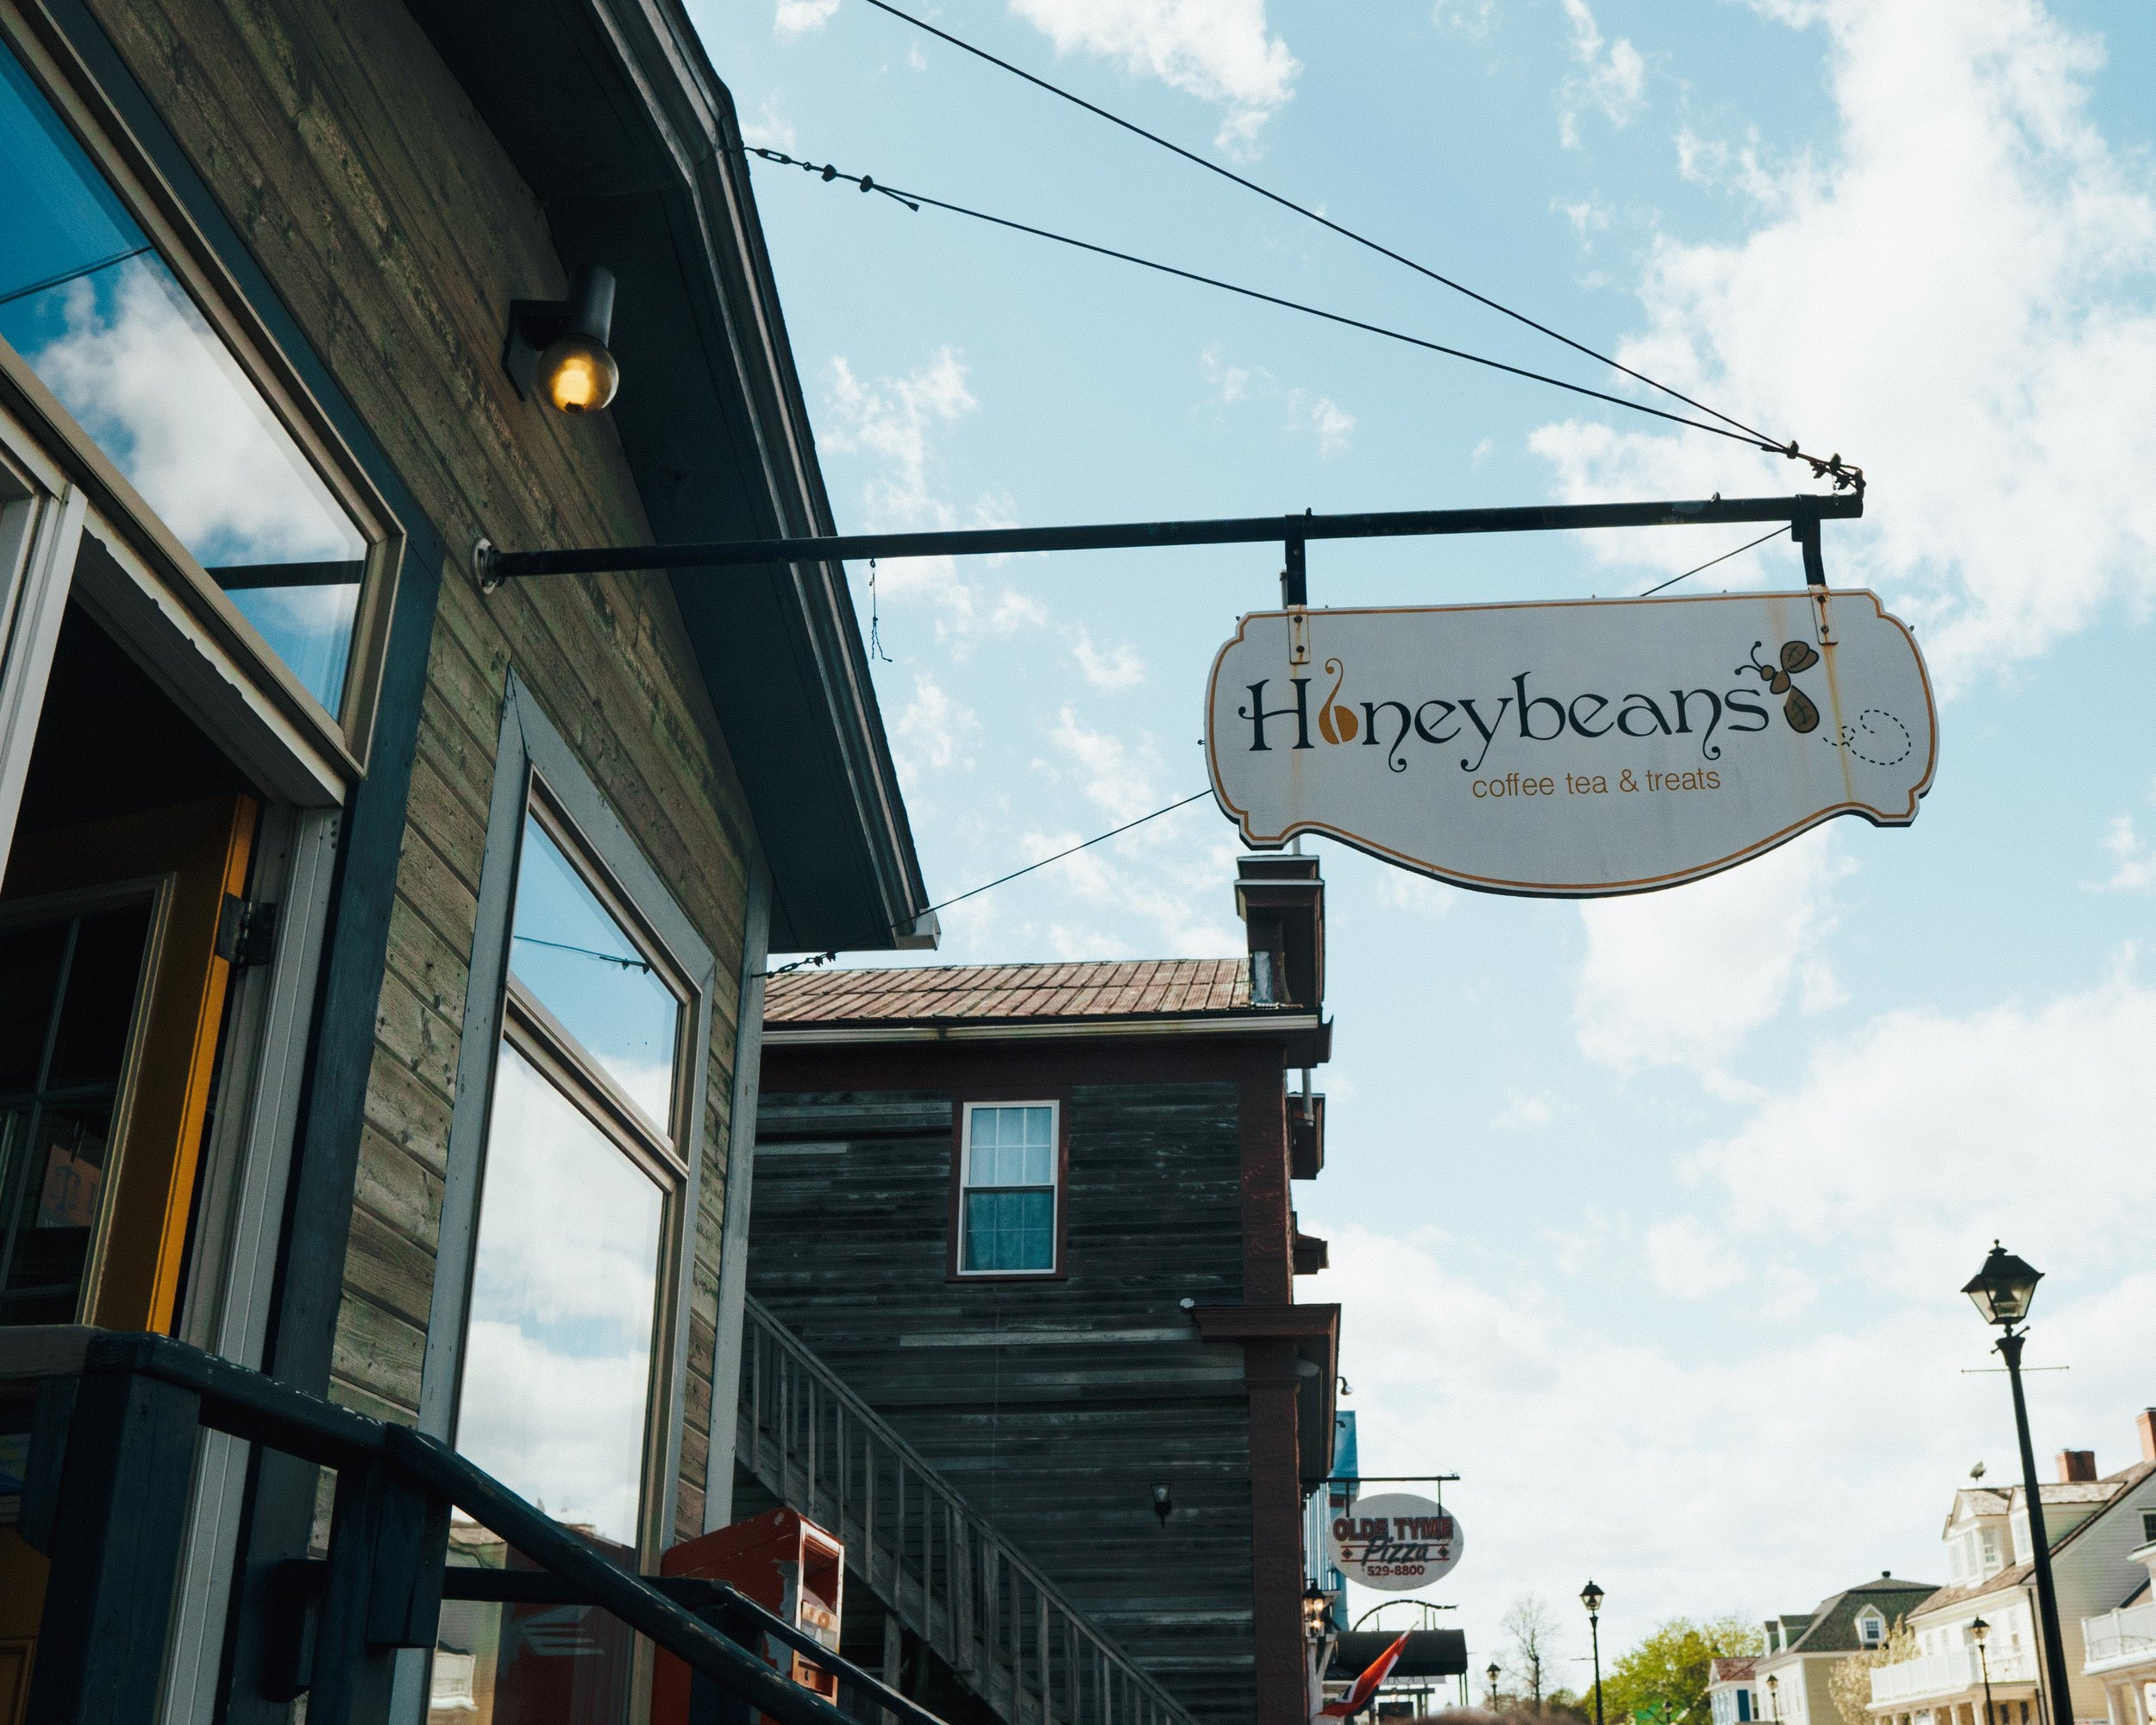 Honeybeans Cafe - the perfect spot for an afternoon pick-me-up